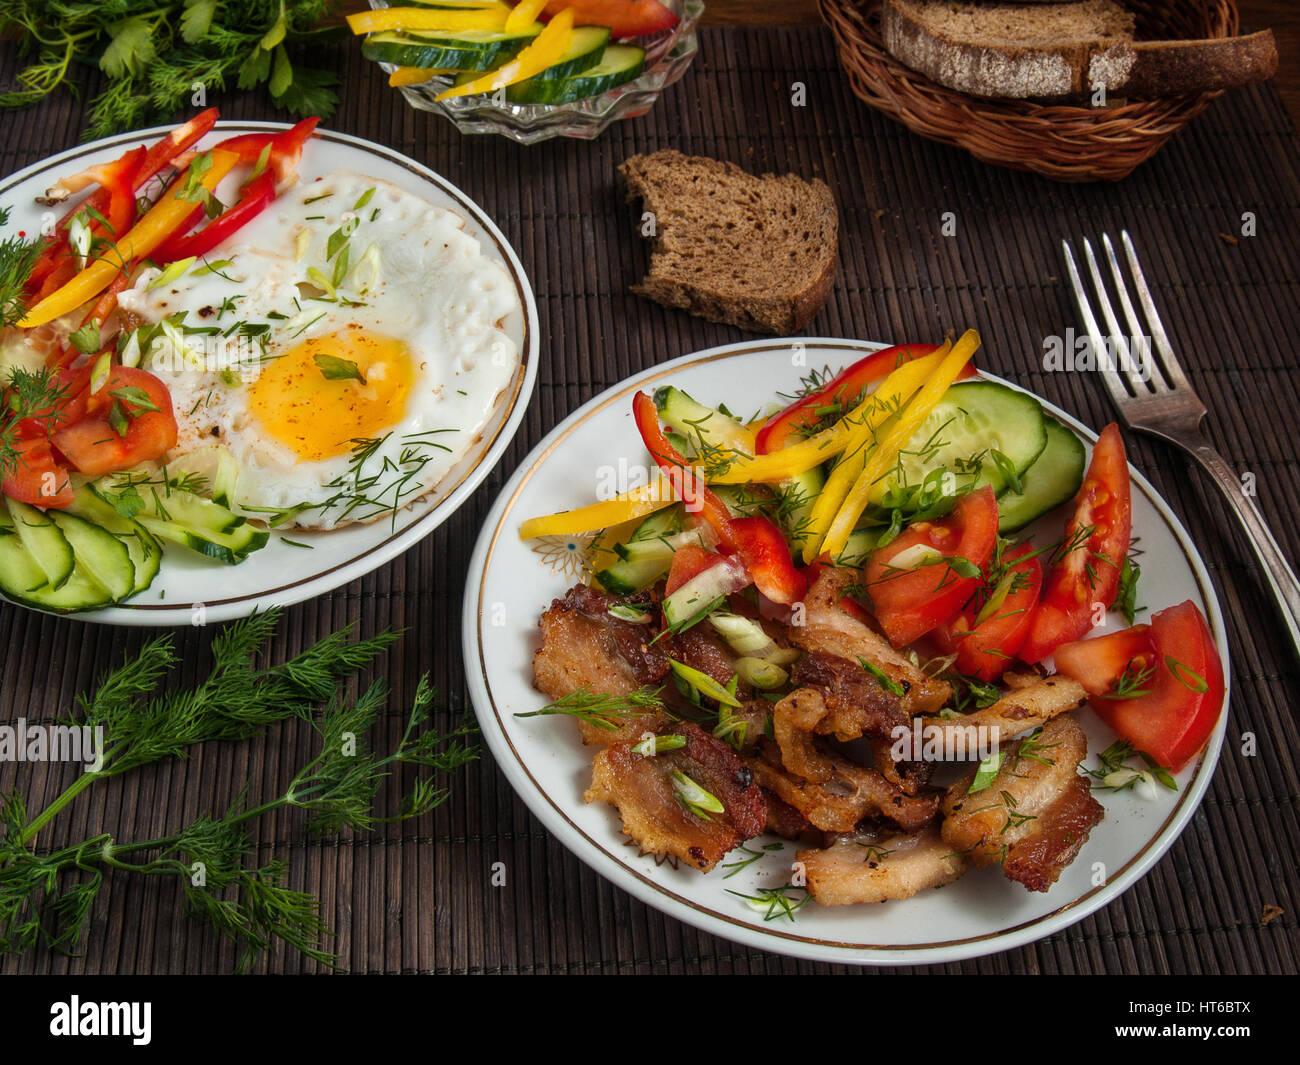 Fried bacon, eggs and vegetables with pepper, tomato and greens on white plates on a table on a bamboo napkin - Stock Image